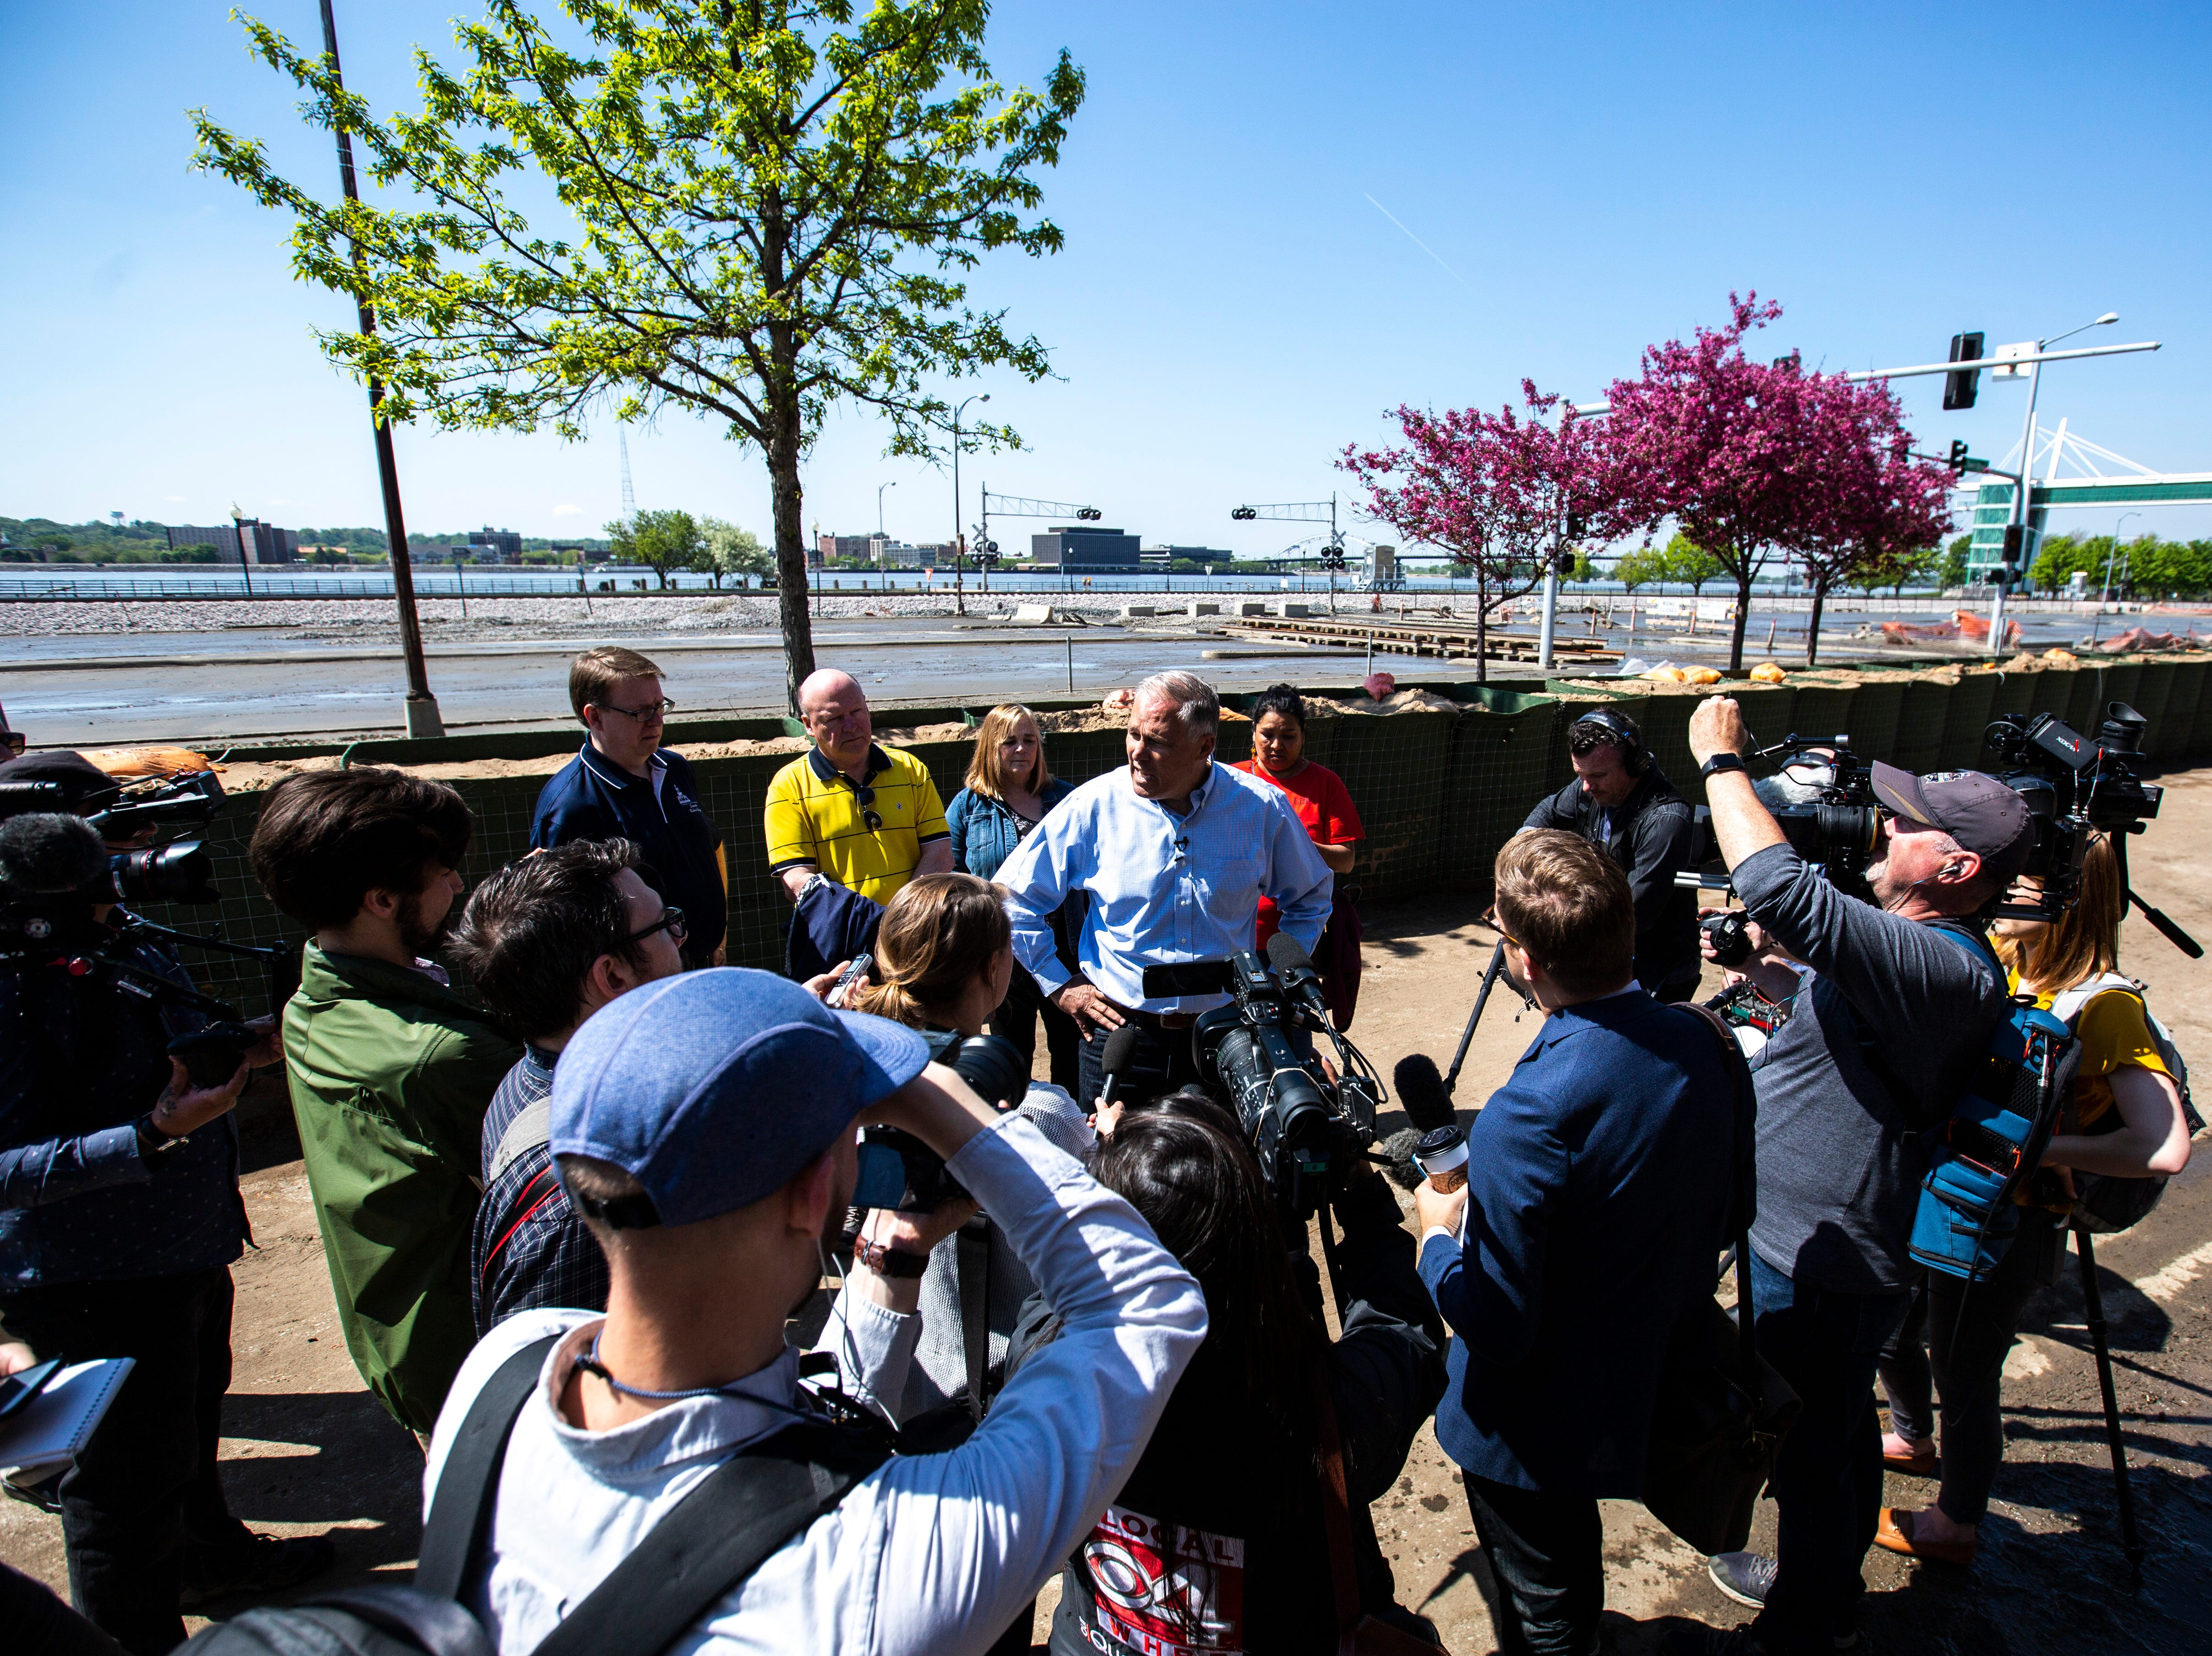 Washington Gov. Jay Inslee speaks with reporters after touring areas impacted by floodwaters, Wednesday, May 15, 2019, in downtown Davenport, Iowa.